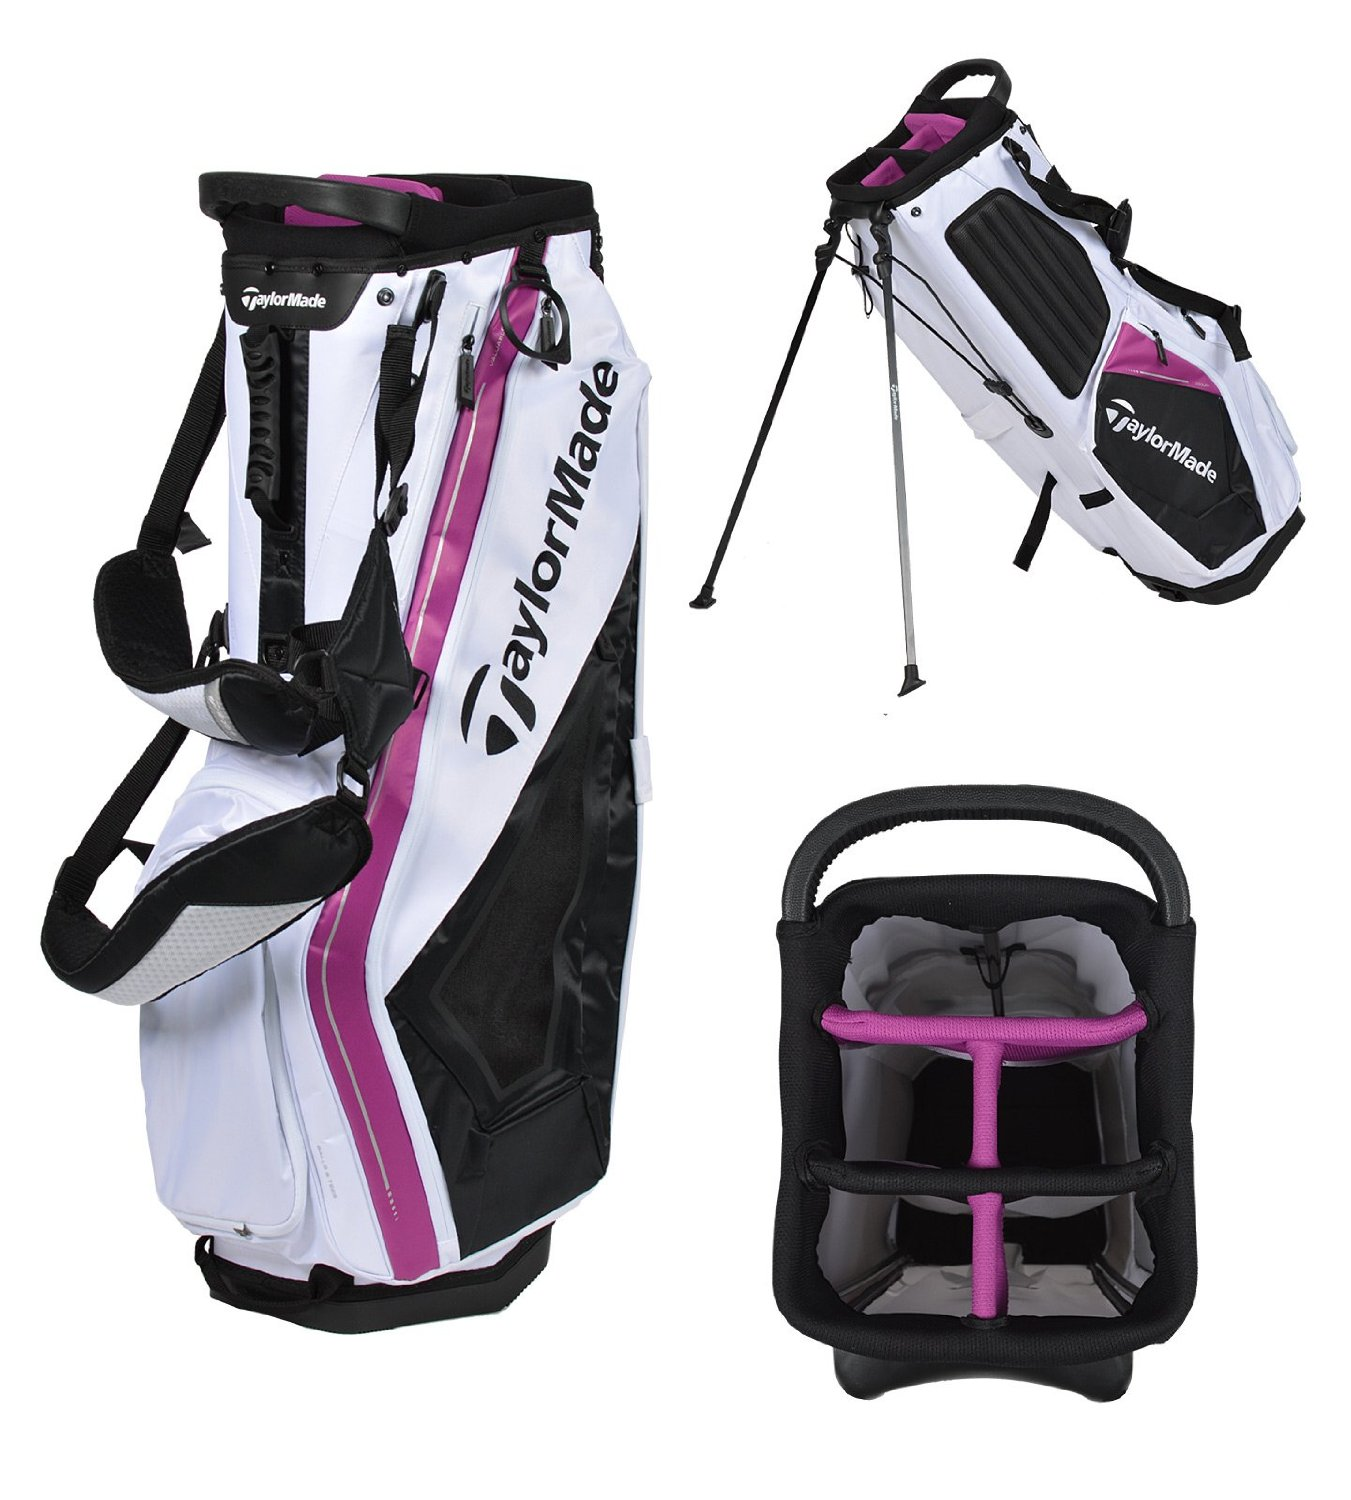 Womens Taylormade Purelite Golf Stand Bags